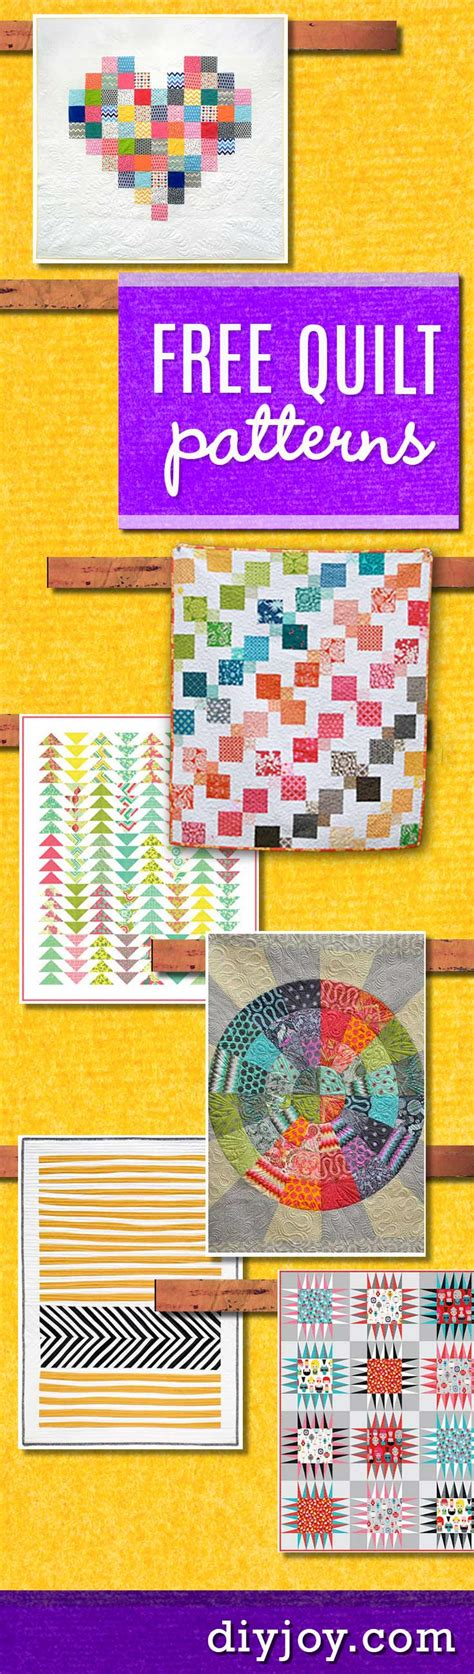 free quilt patterns lessons free clothing patterns you ll love these 18 free easy quilt patterns